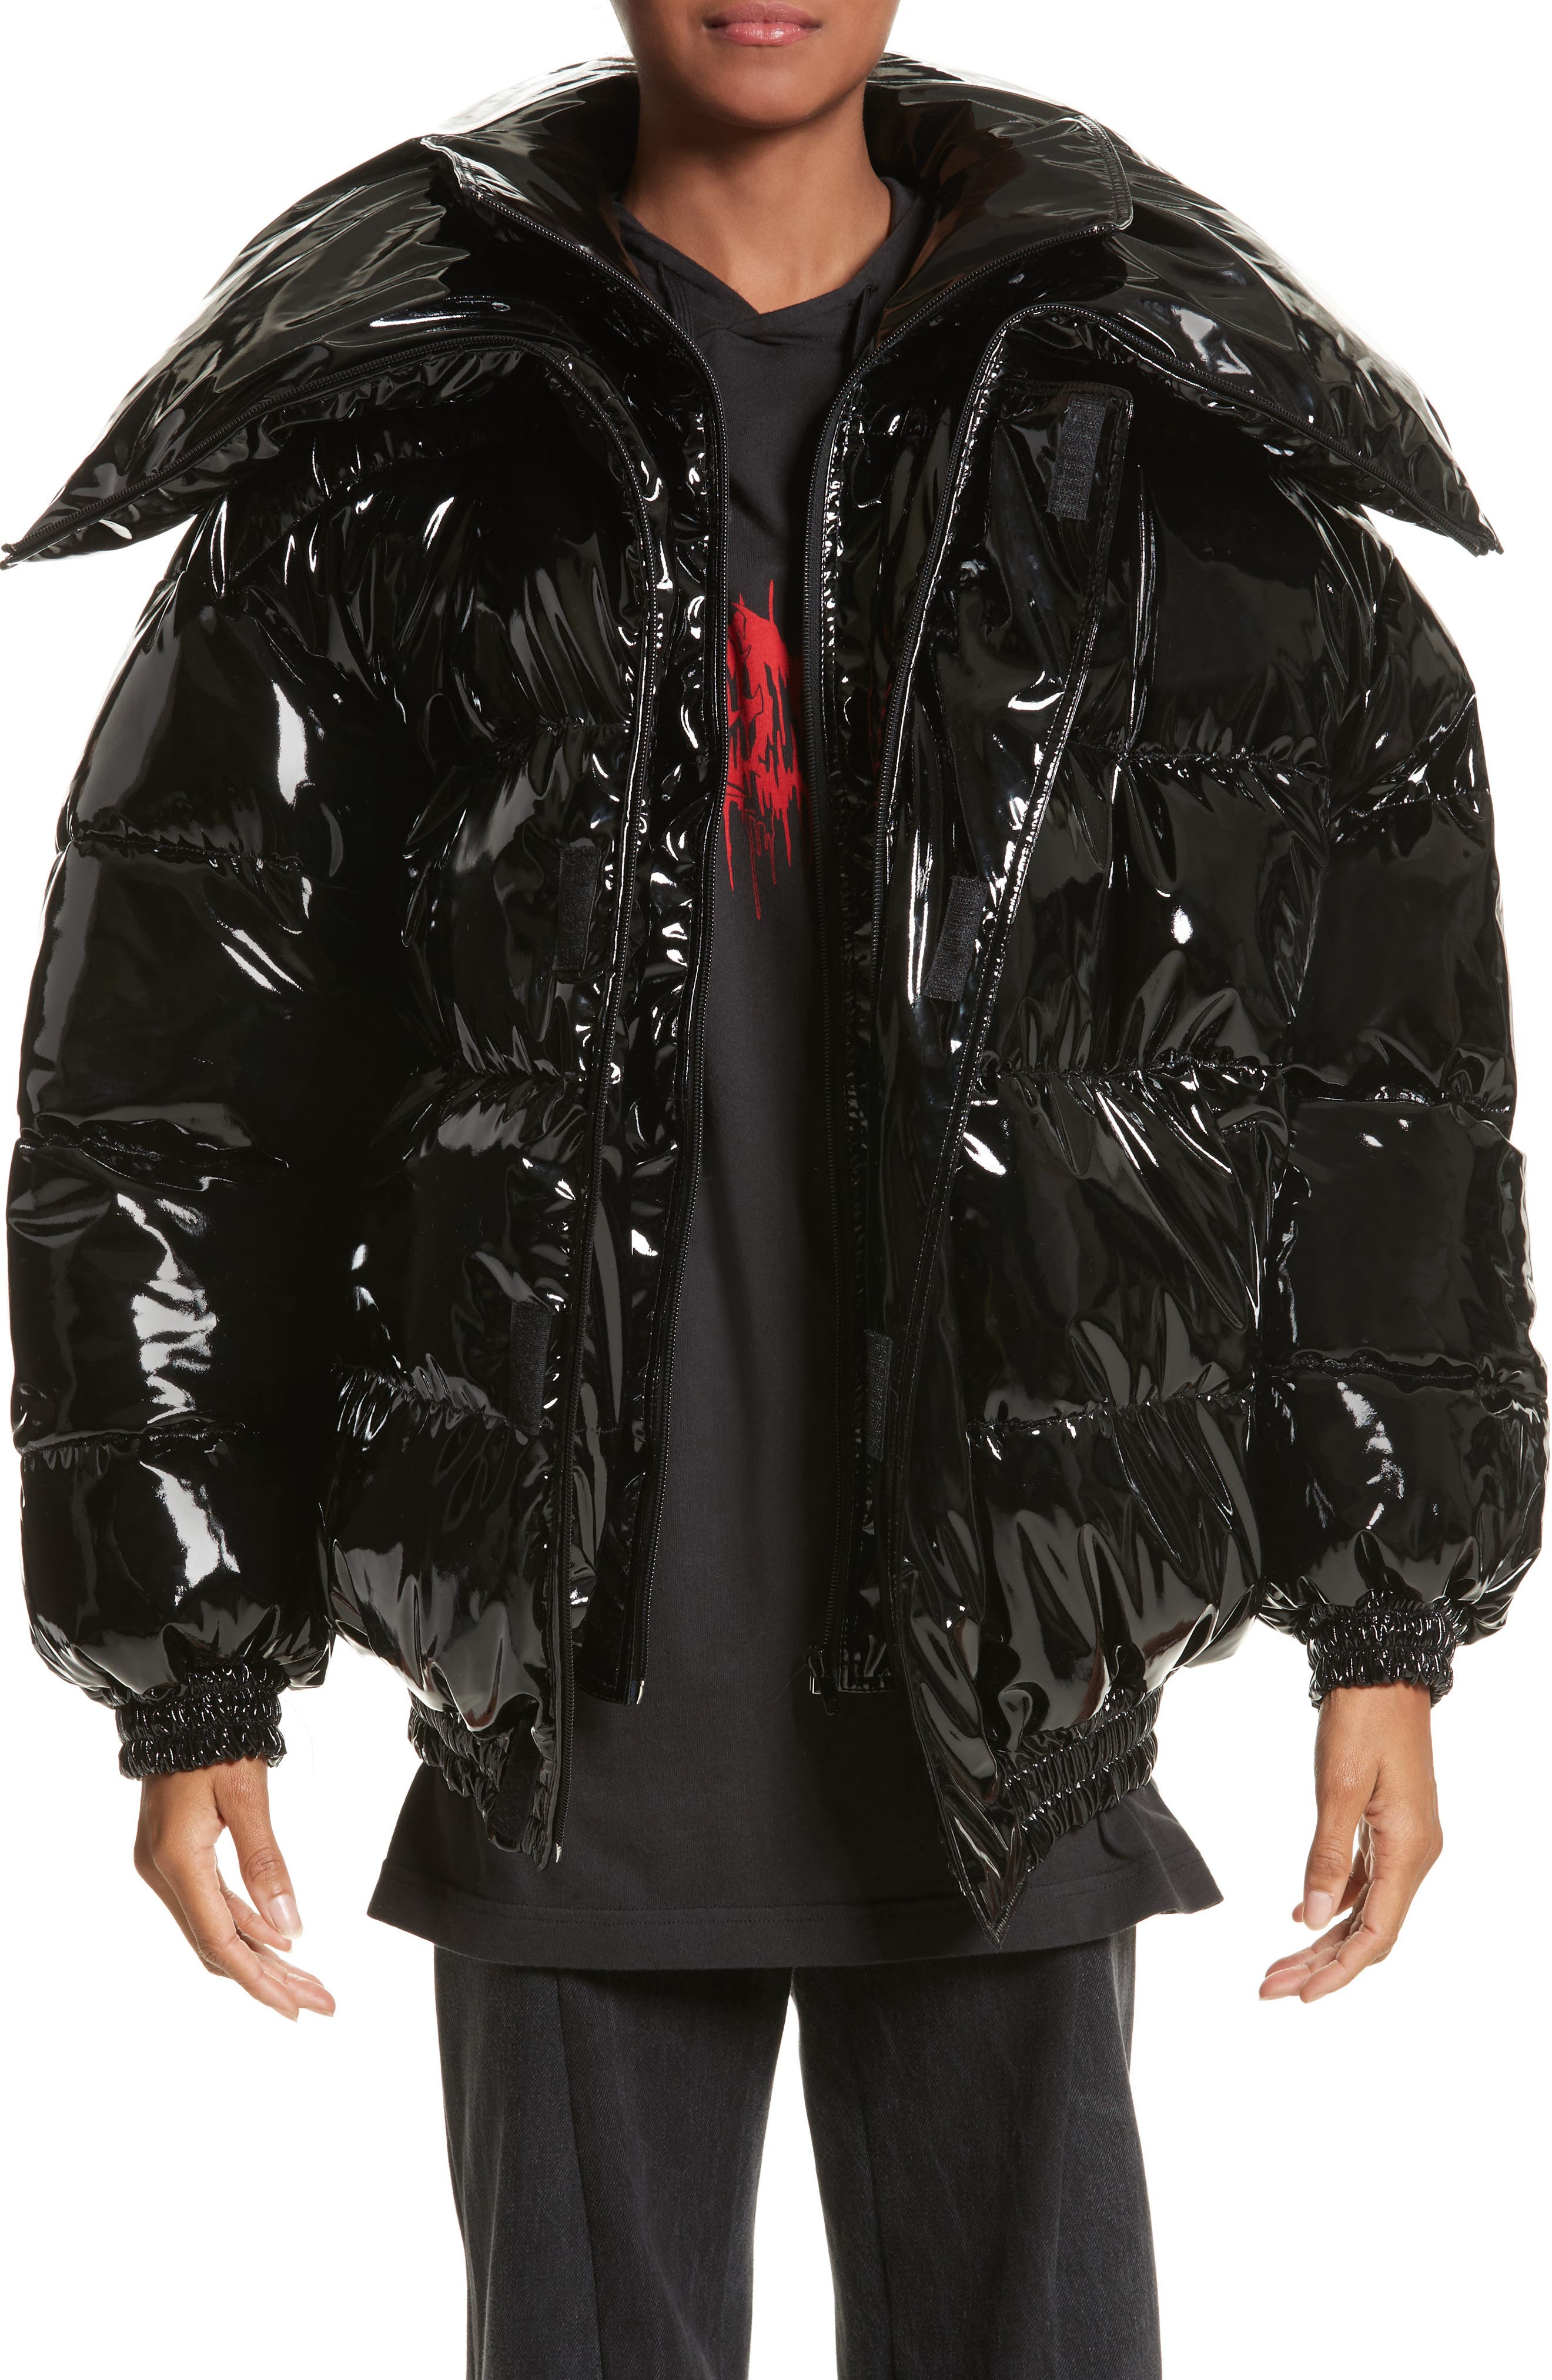 Miss Webcam Puffer Jacket,                         Main,                         color, Black